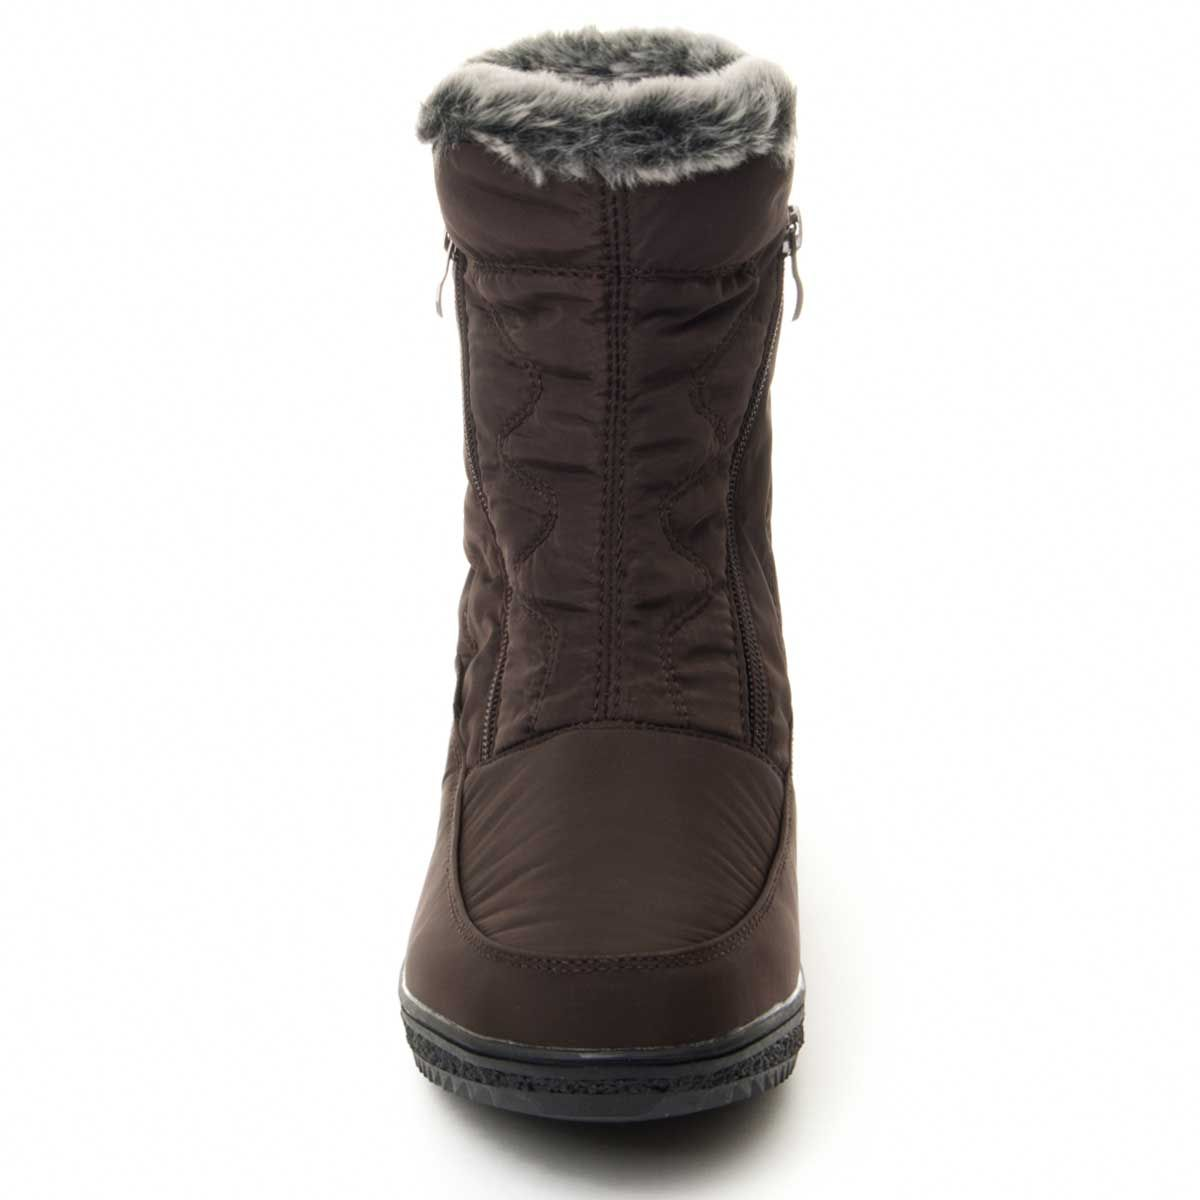 Montevita Winter Ankle Boot in Brown